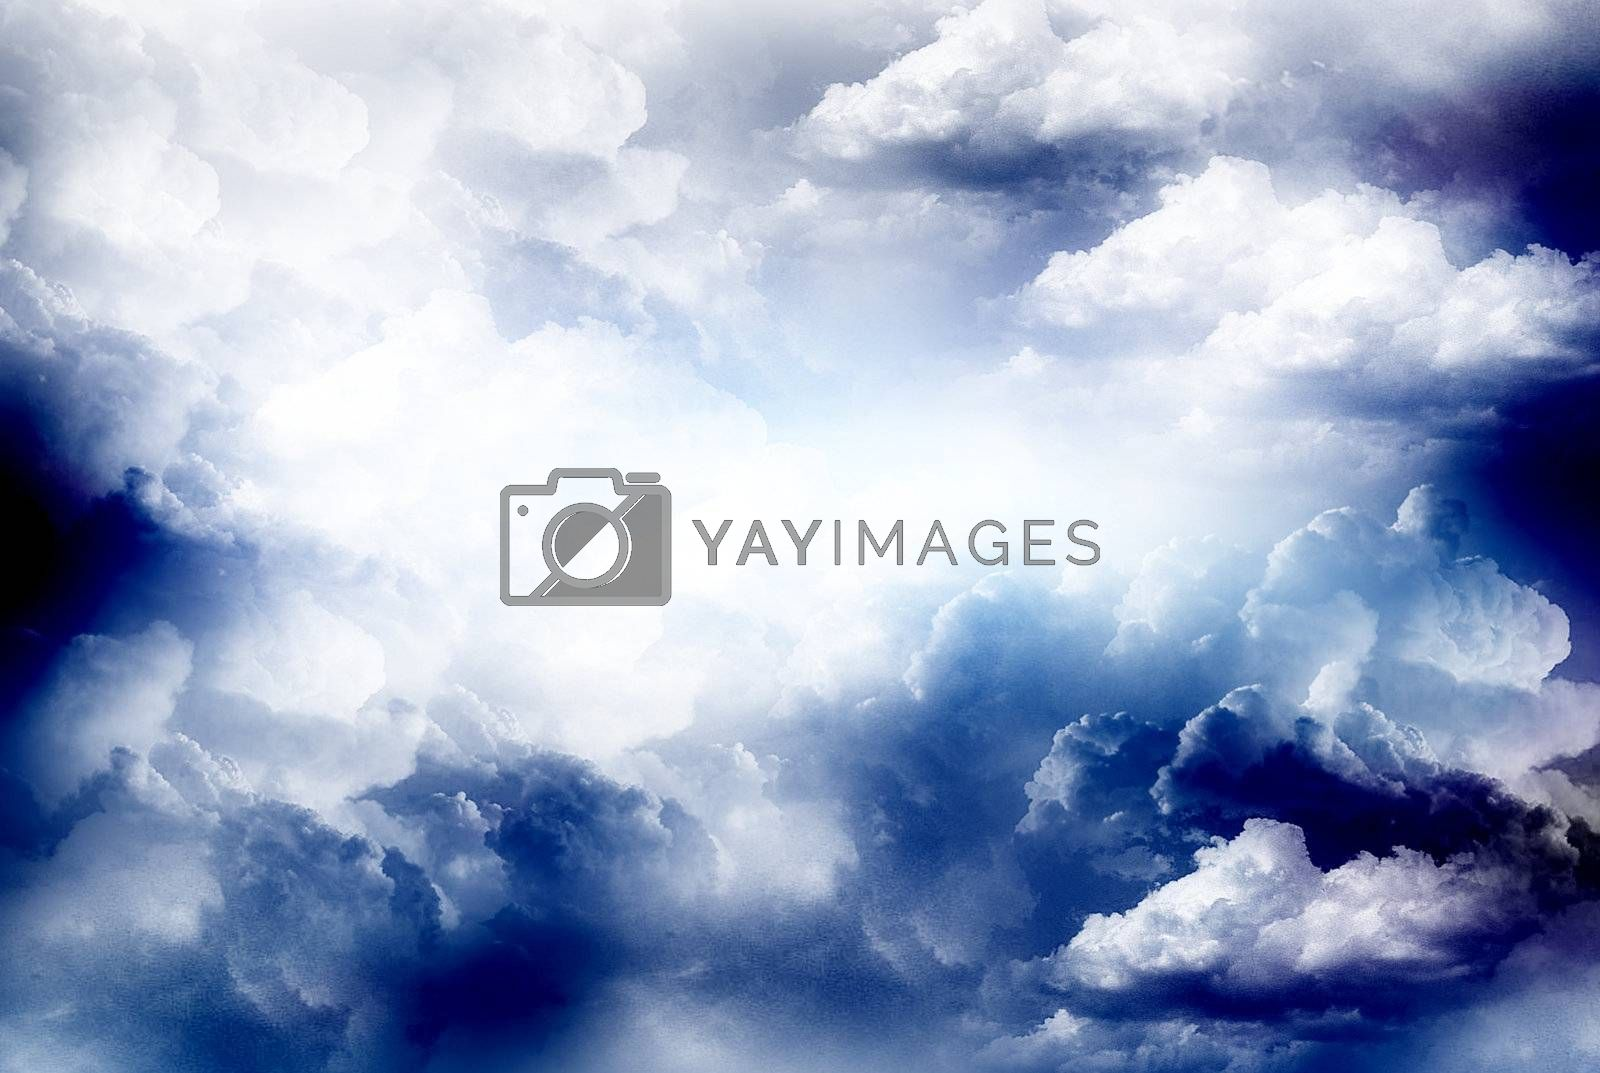 blue sky illustration, clouds design